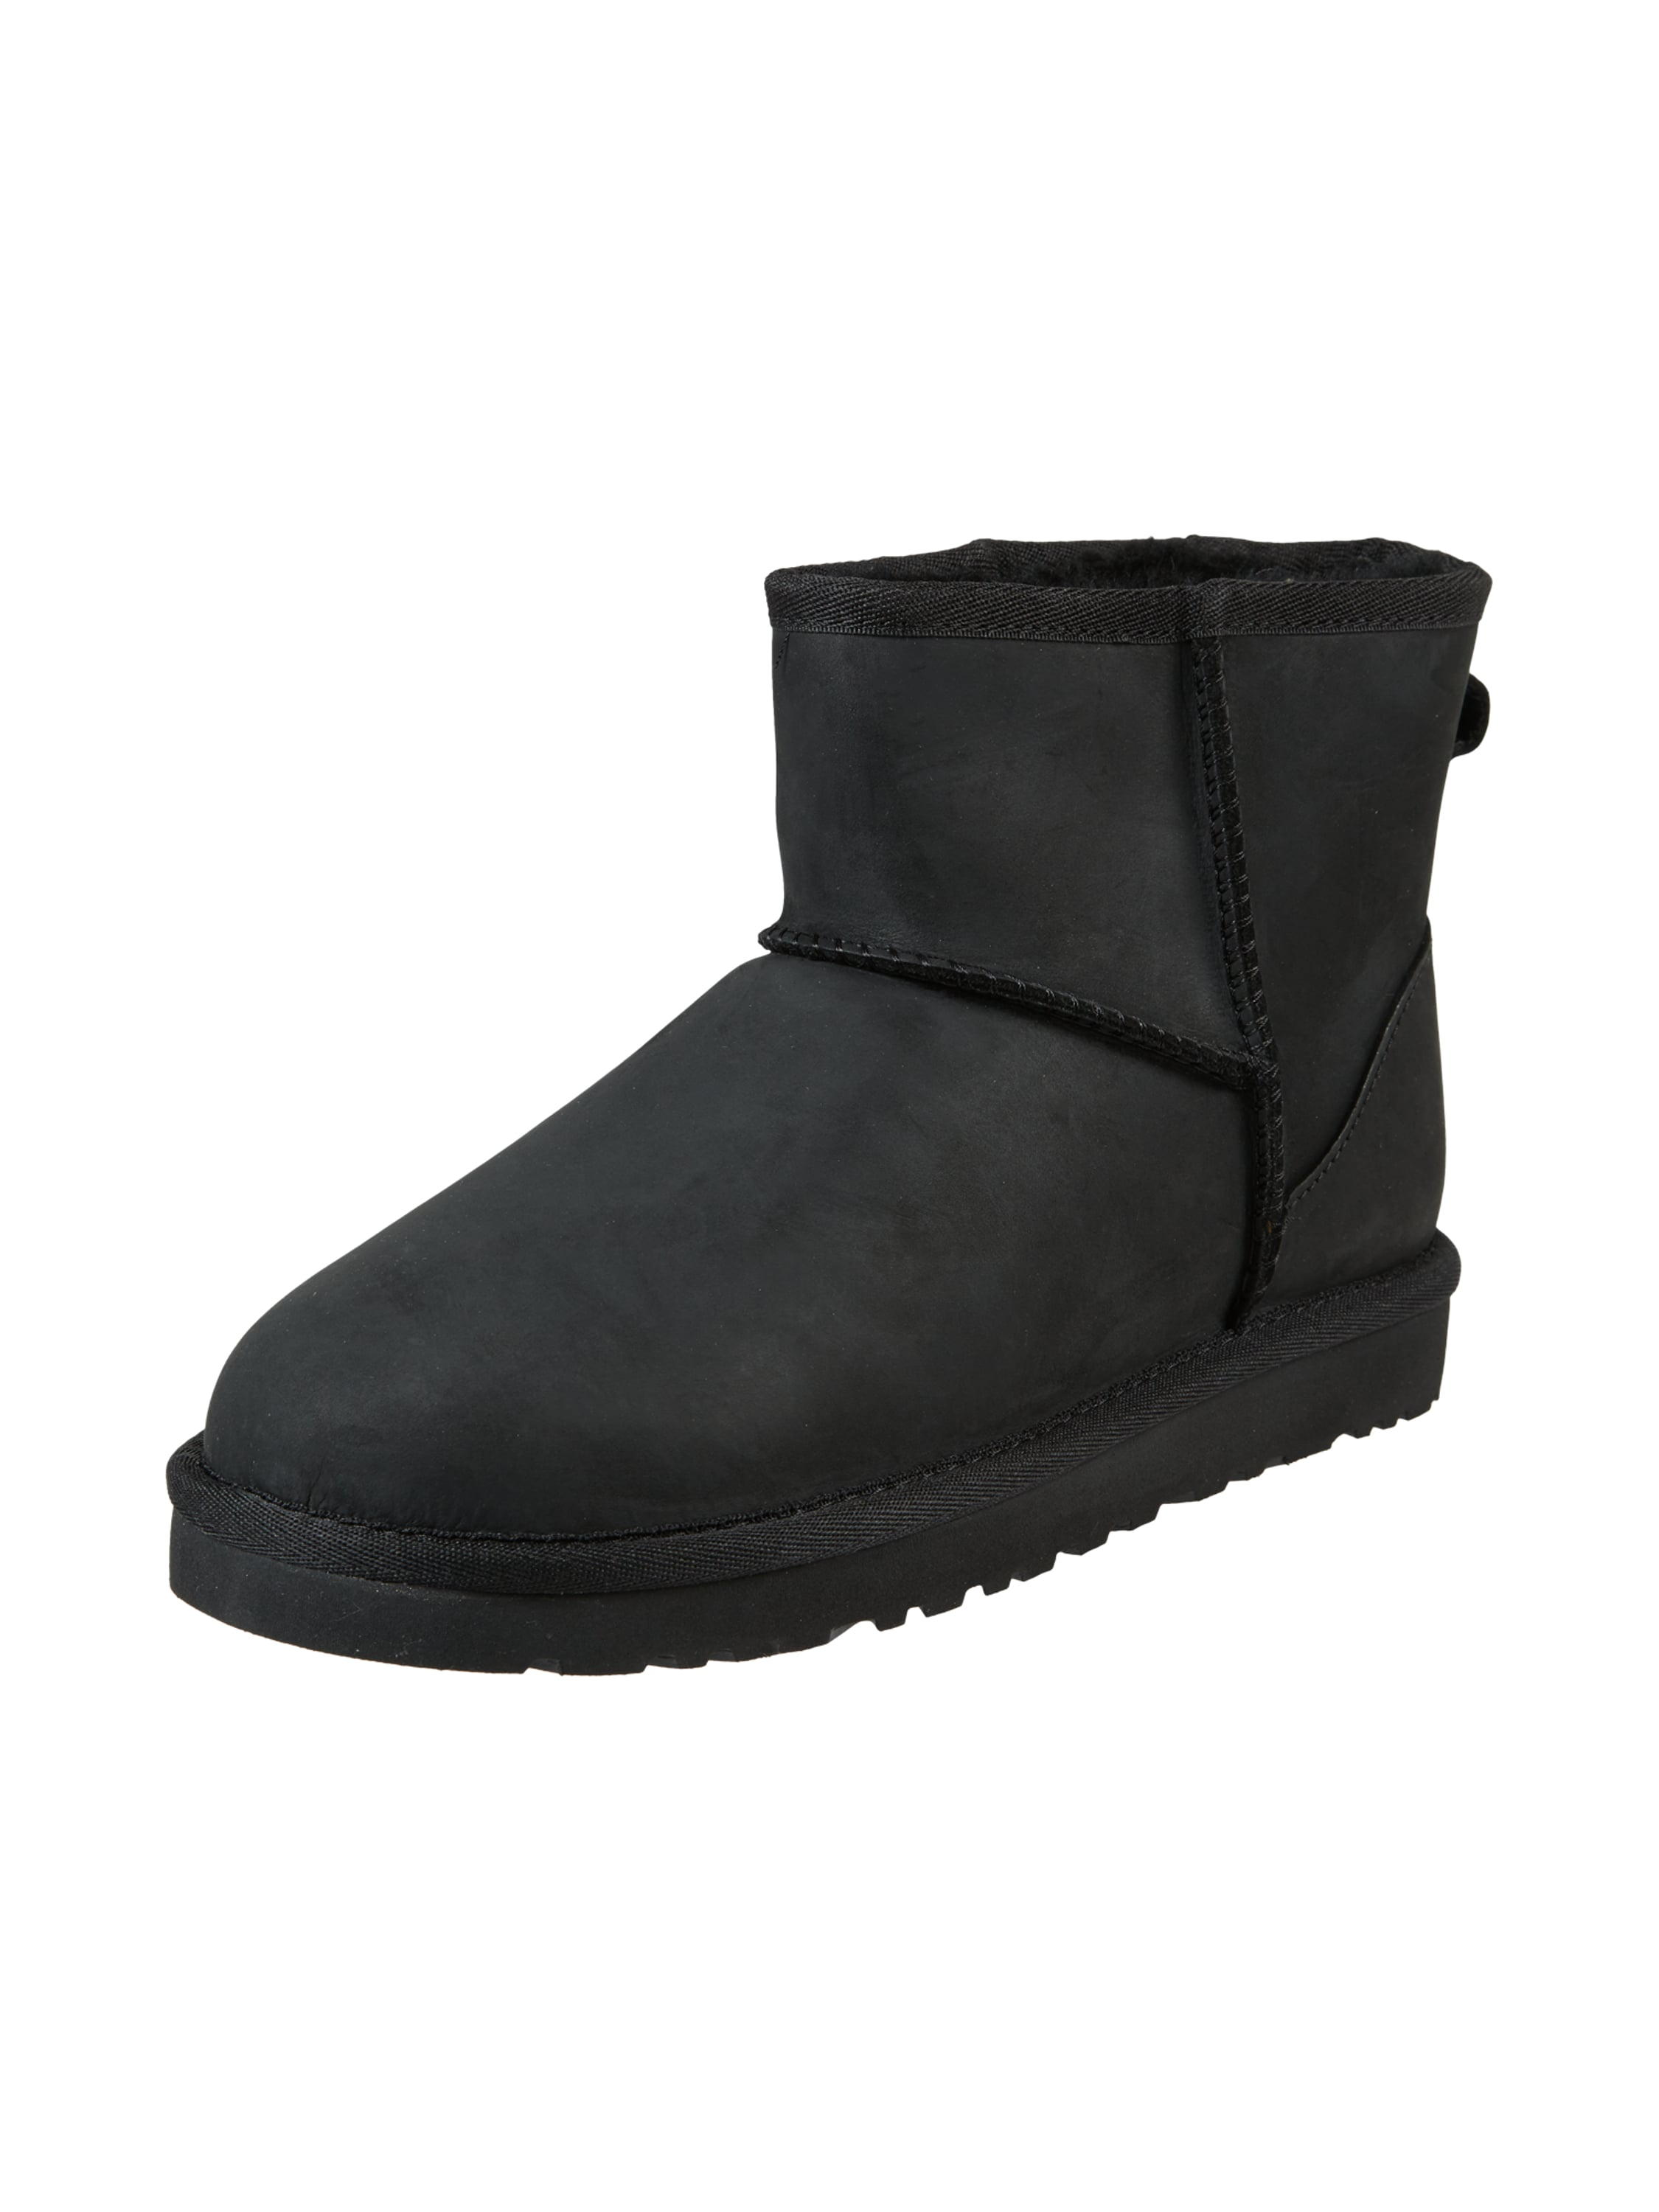 22ffd6ad37f Ugly Ugg Boots Truth Ugg Boots - cheap watches mgc-gas.com